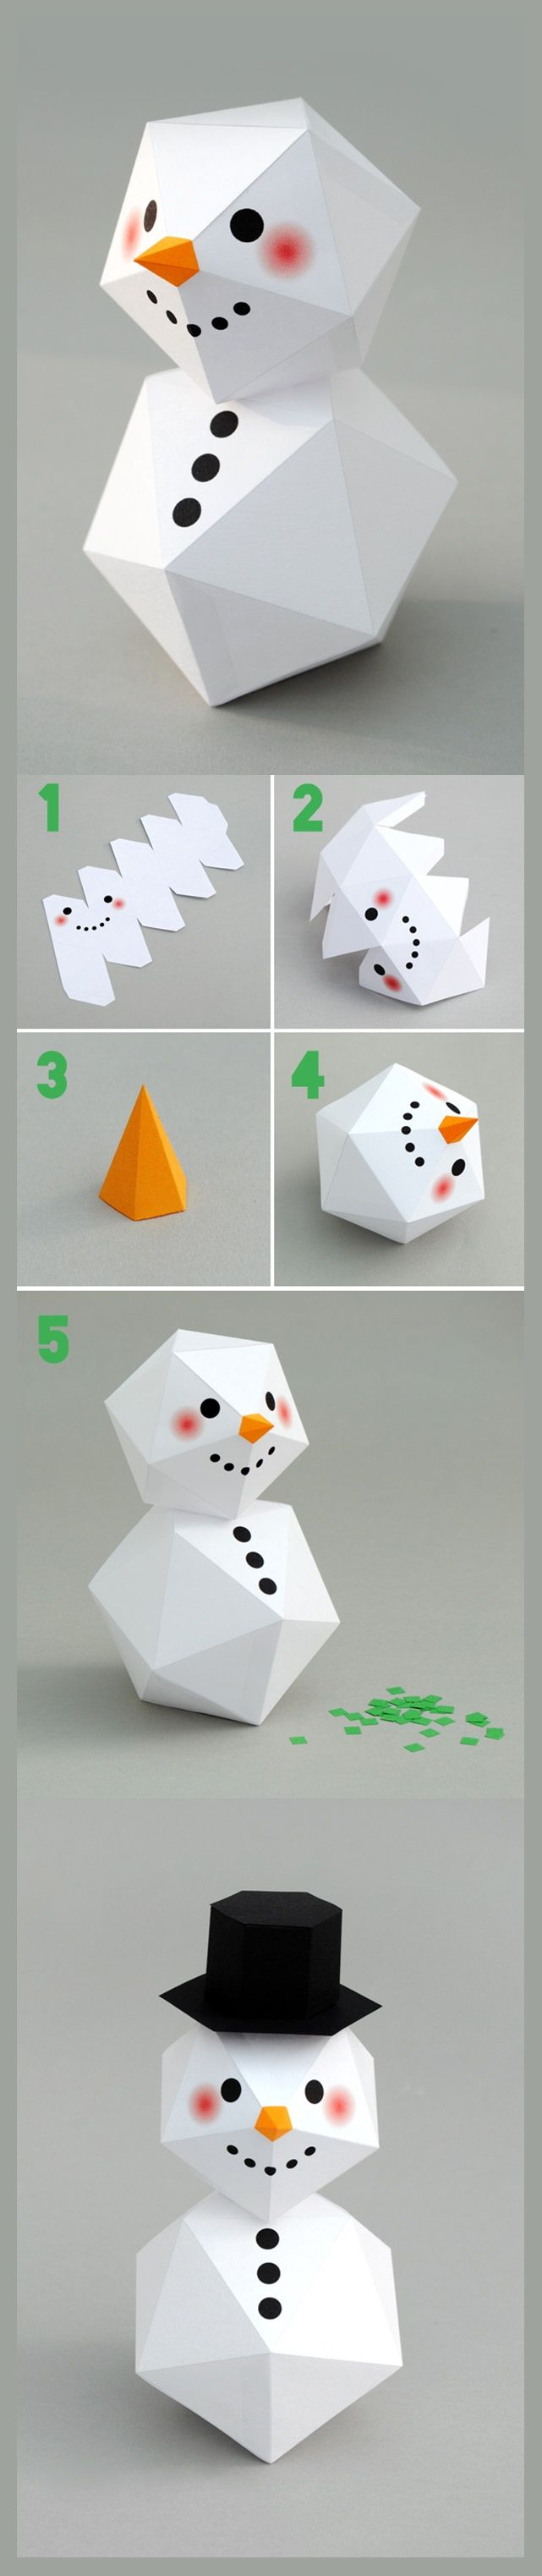 http://www.minieco.co.uk/images/sept14/snowman2.pdf http://www.minieco.co.uk/images/sept14/snowman1.pdf